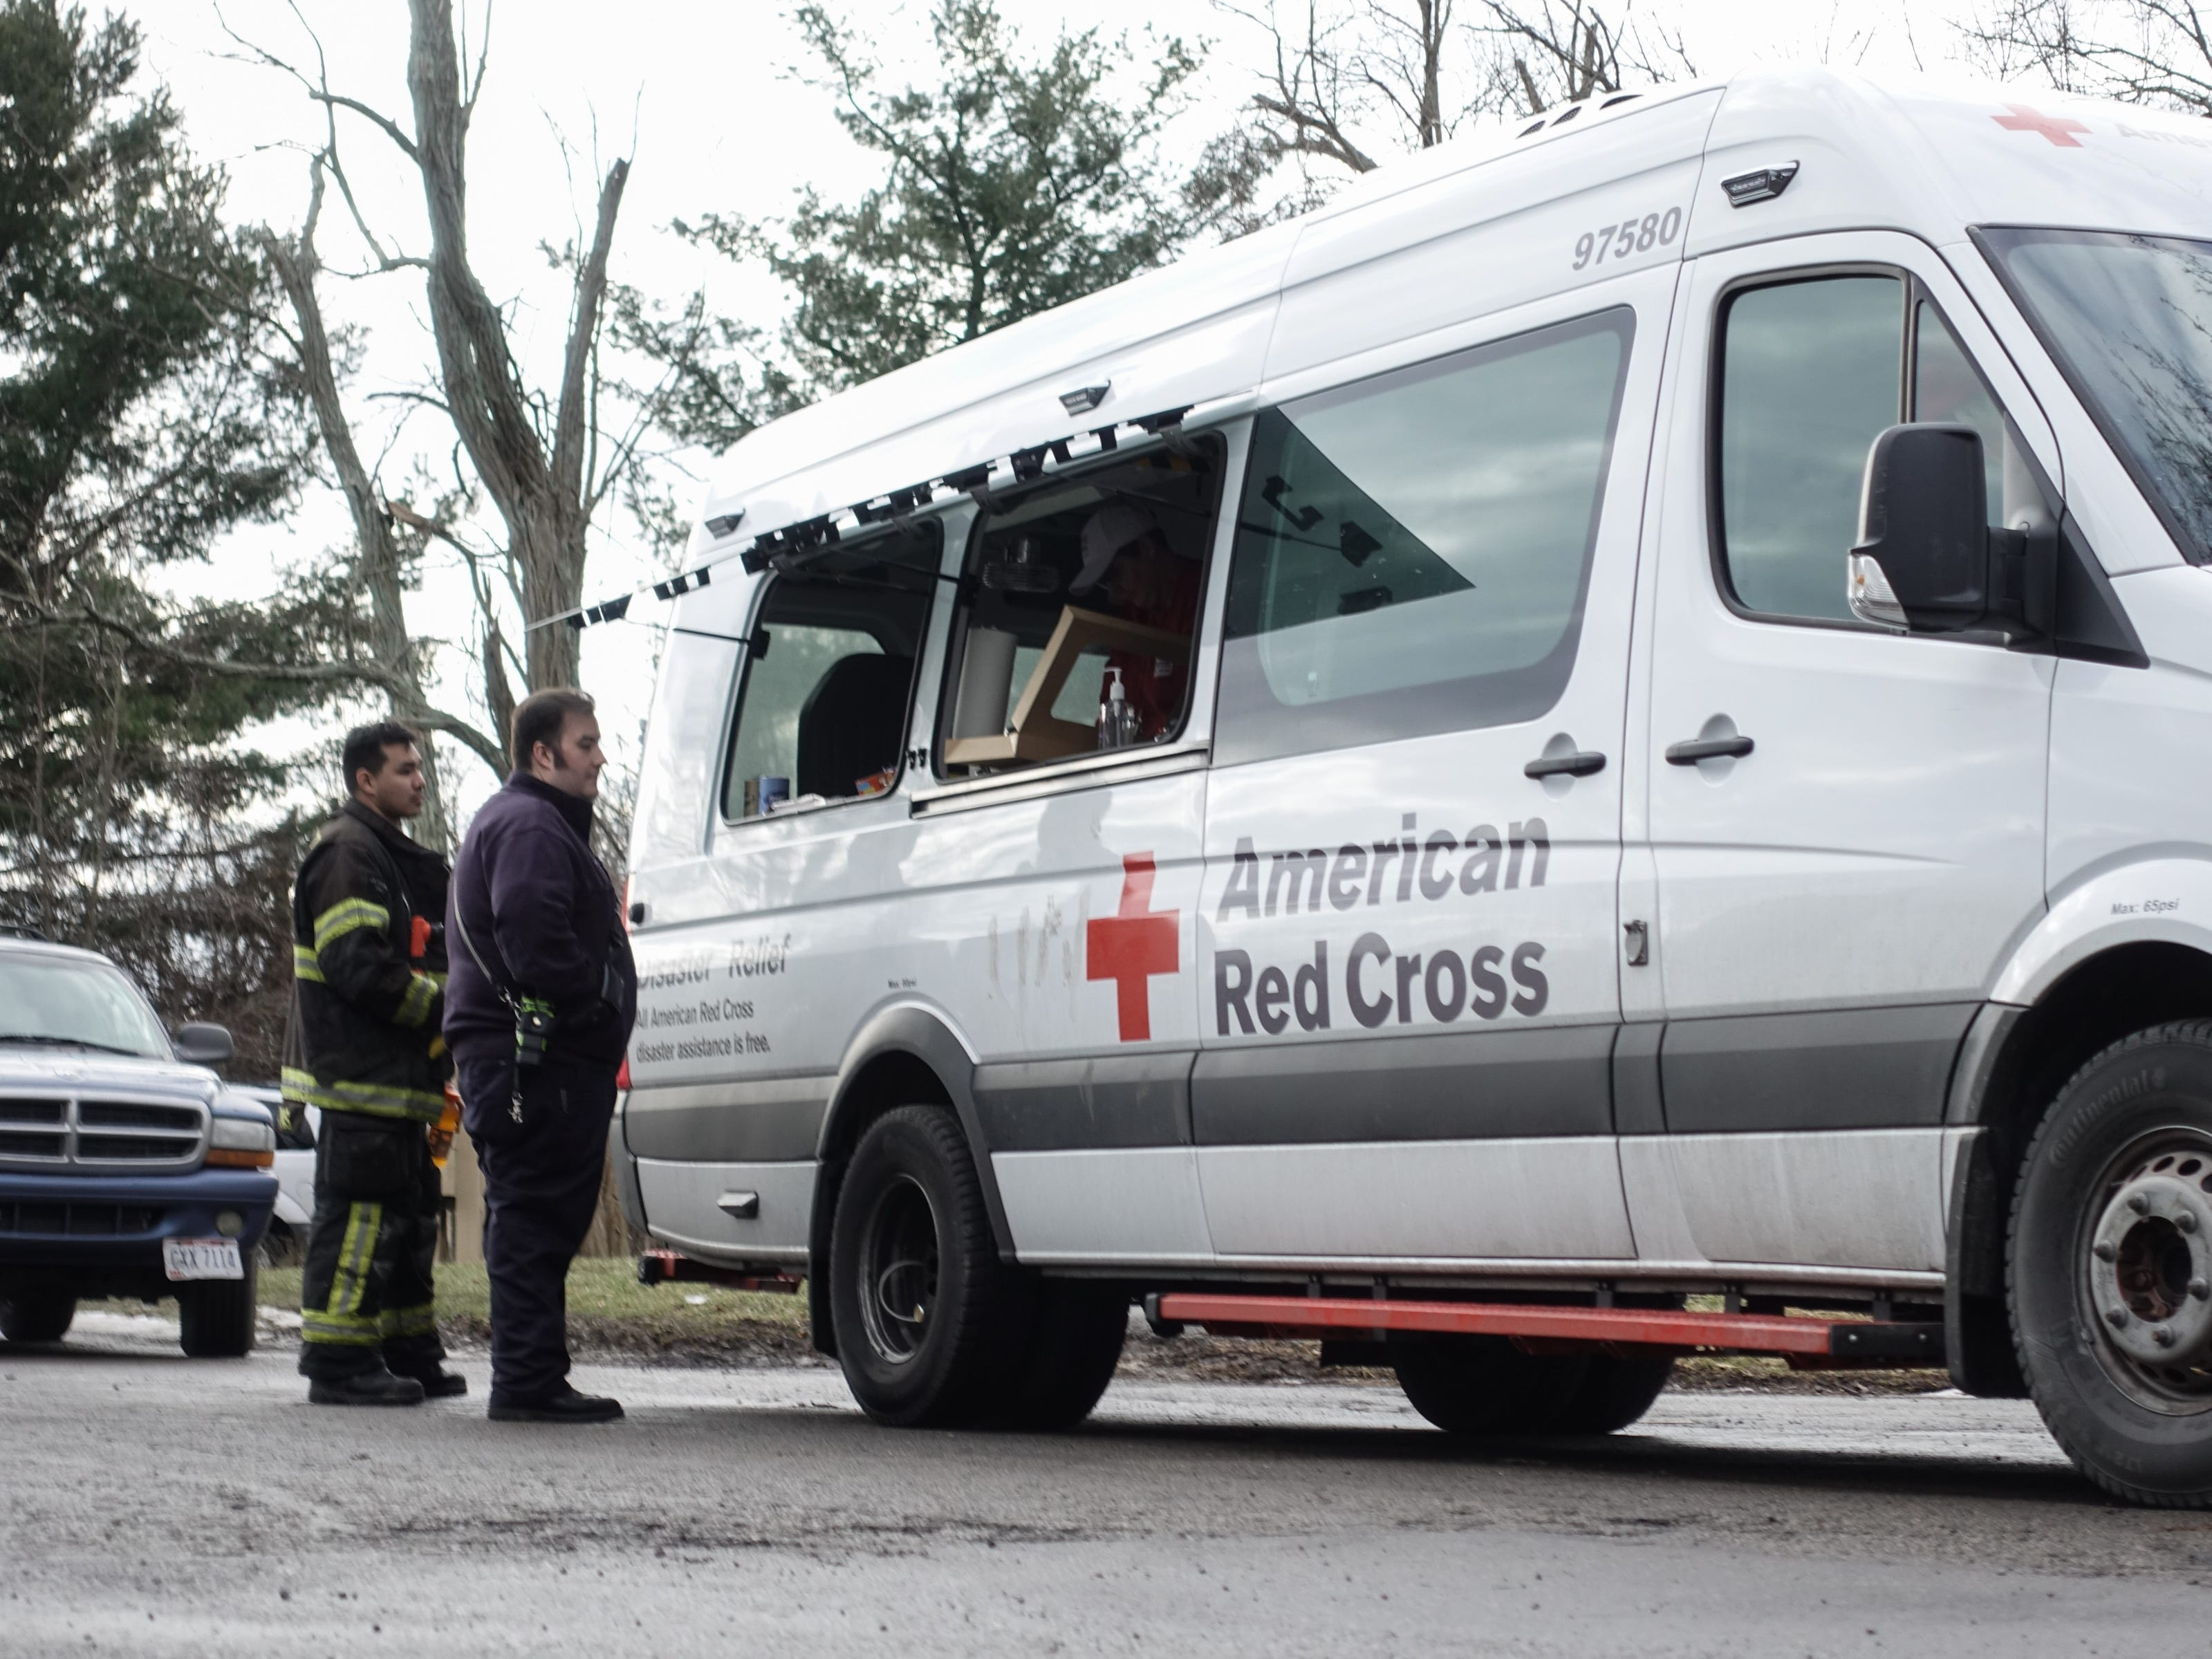 American Red Cross stationed on on the scene at the Royal Oaks Apartments in Pierce Township, Ohio after a standoff ended, resulting in the death of one Clermont County Sheriff's deputy, Bill Brewer, and the injury of another, Lt. Nick DeRose.